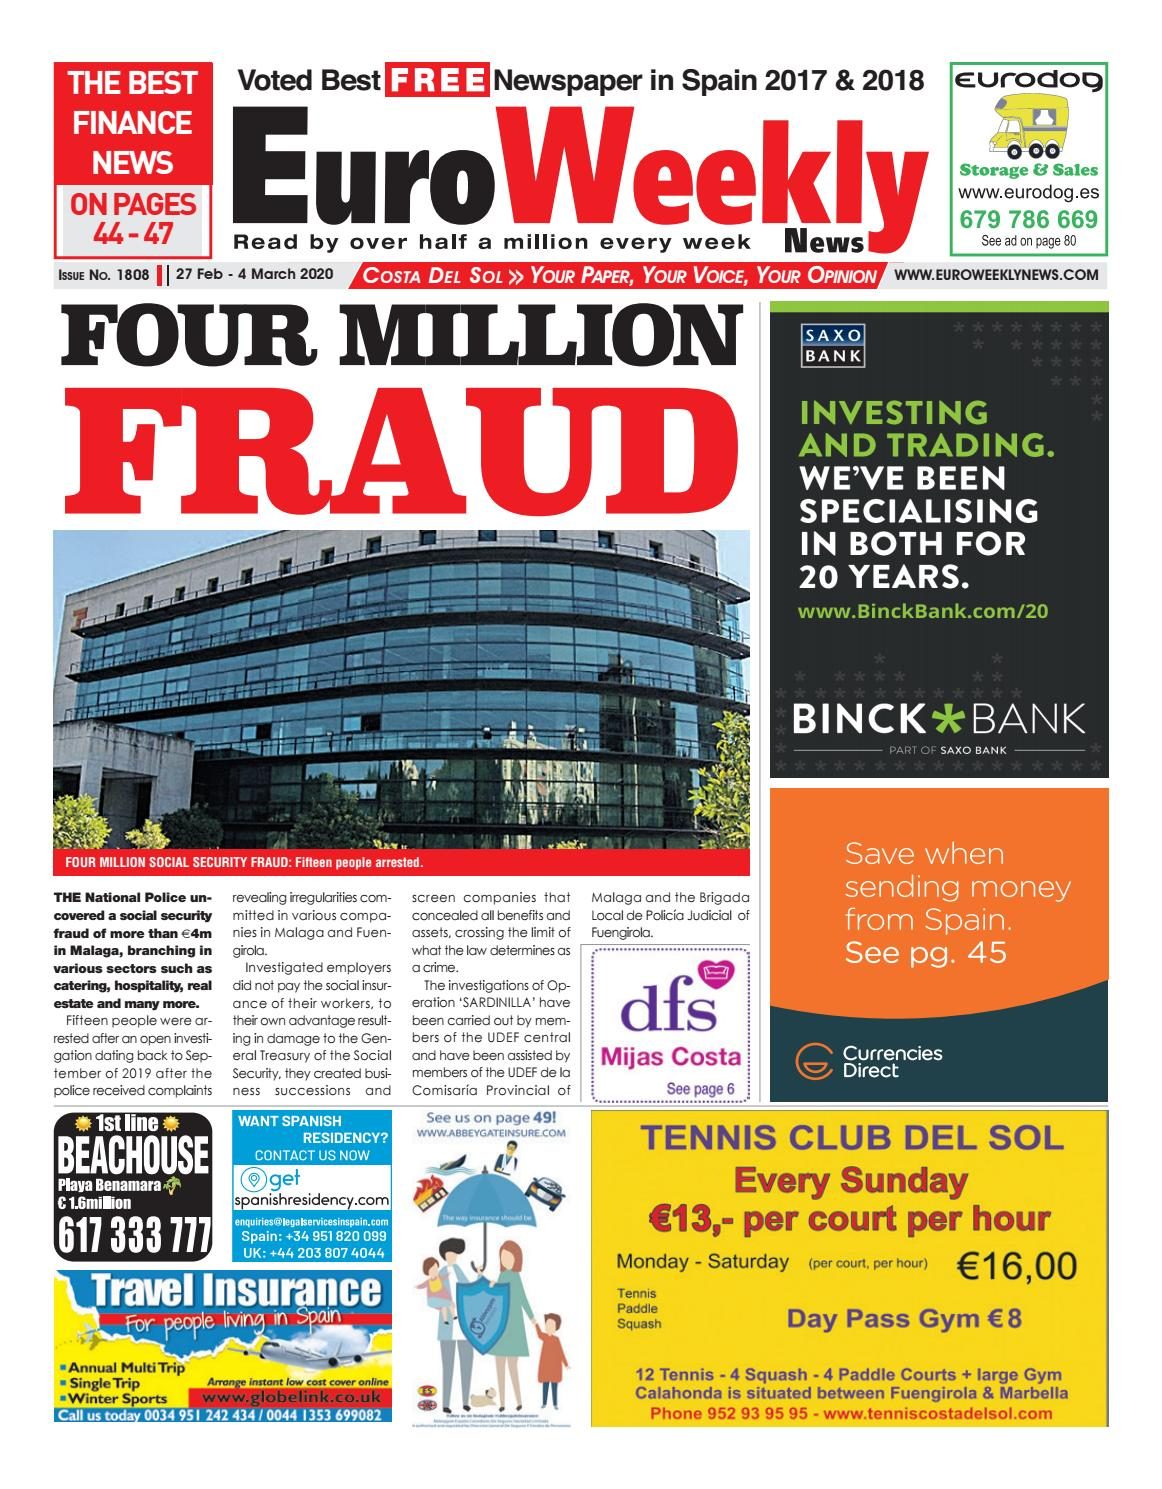 Euro Weekly News Costa Del Sol 27 February 4 March 2020 Issue 1808 By Euro Weekly News Media S A Issuu